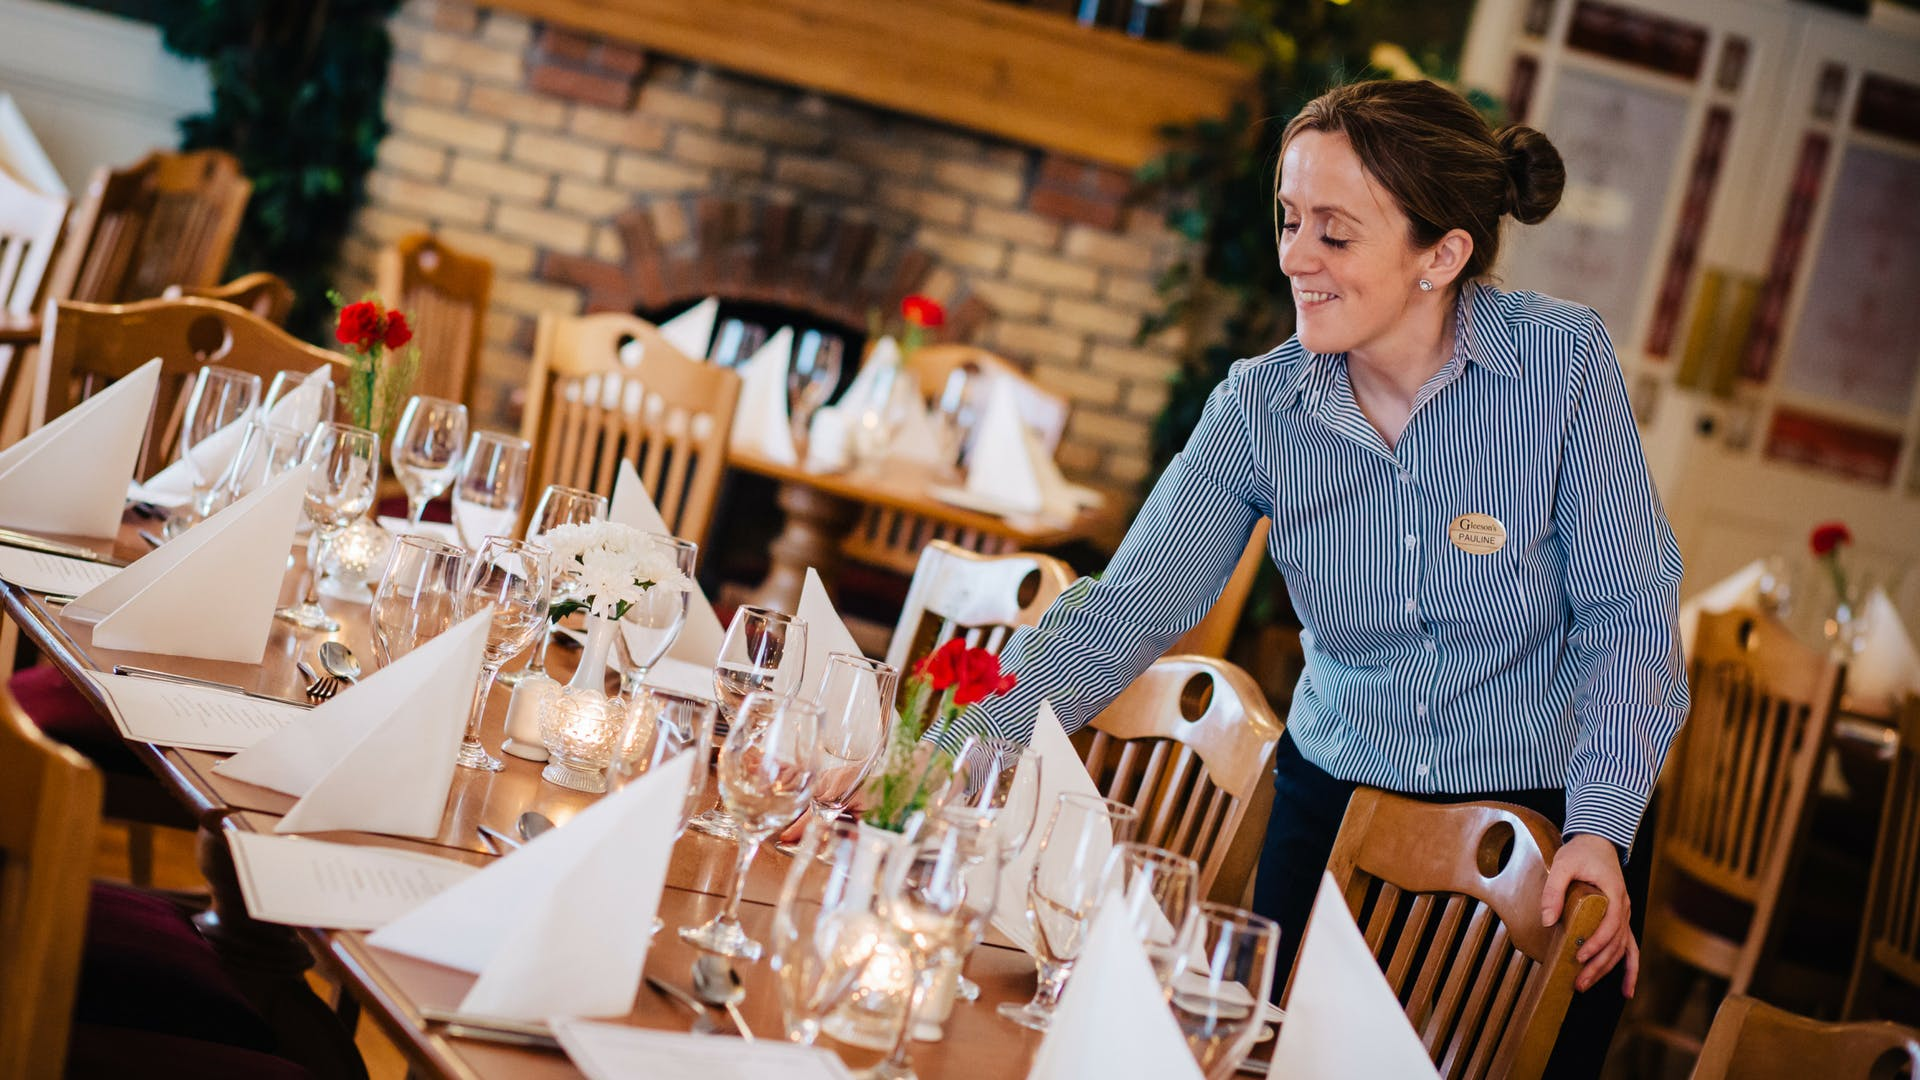 Friendly, helpful service with a smile at Gleesons Restaurant & Rooms, Roscommon